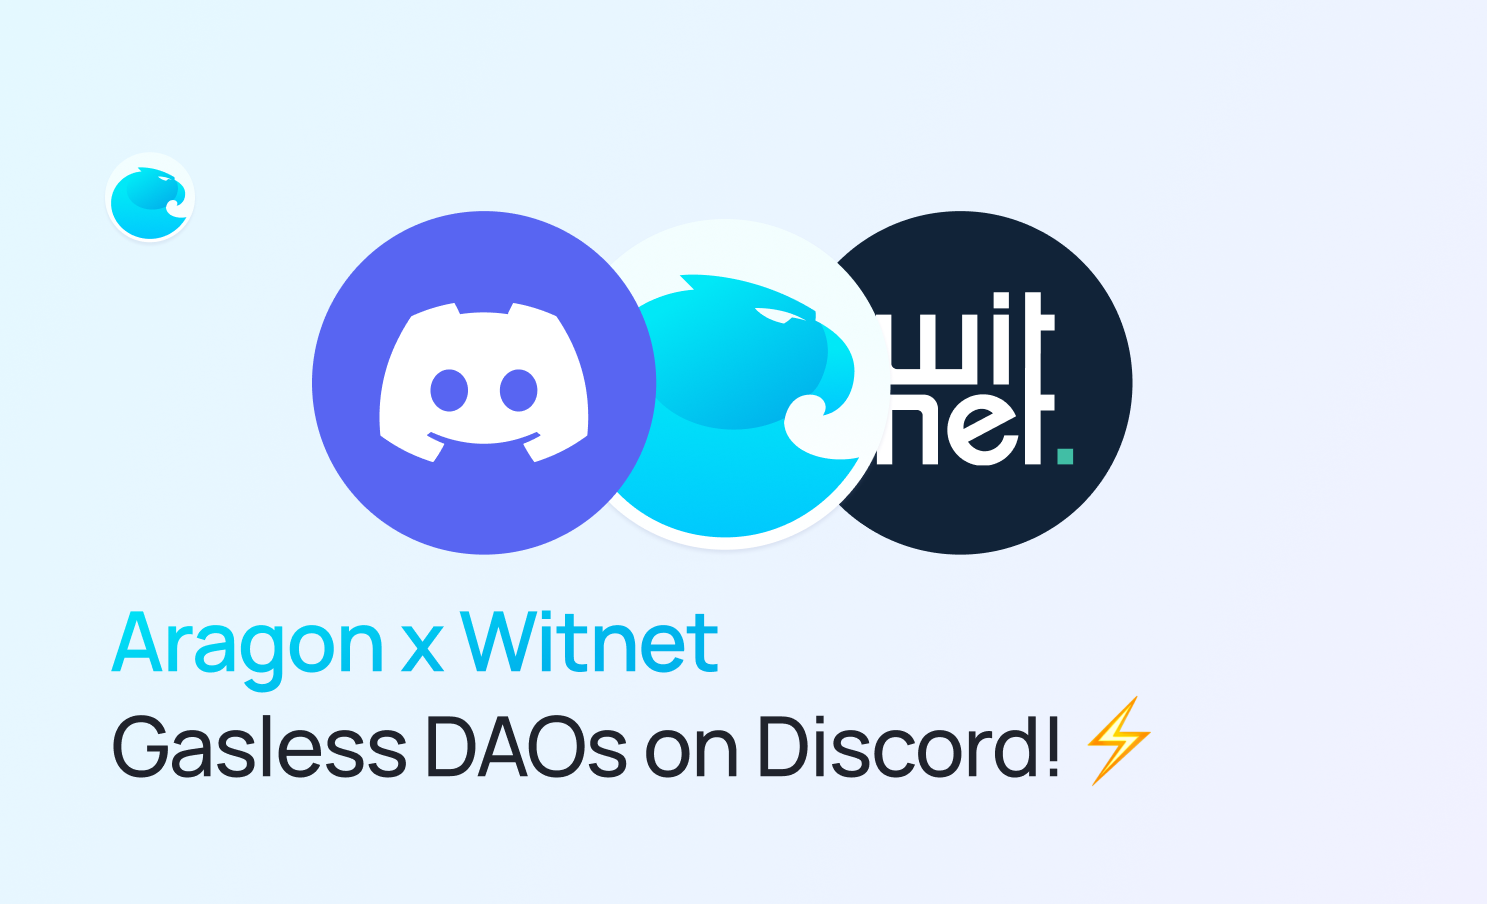 Aragon Partners with Witnet for Gasless DAO Management on Discord